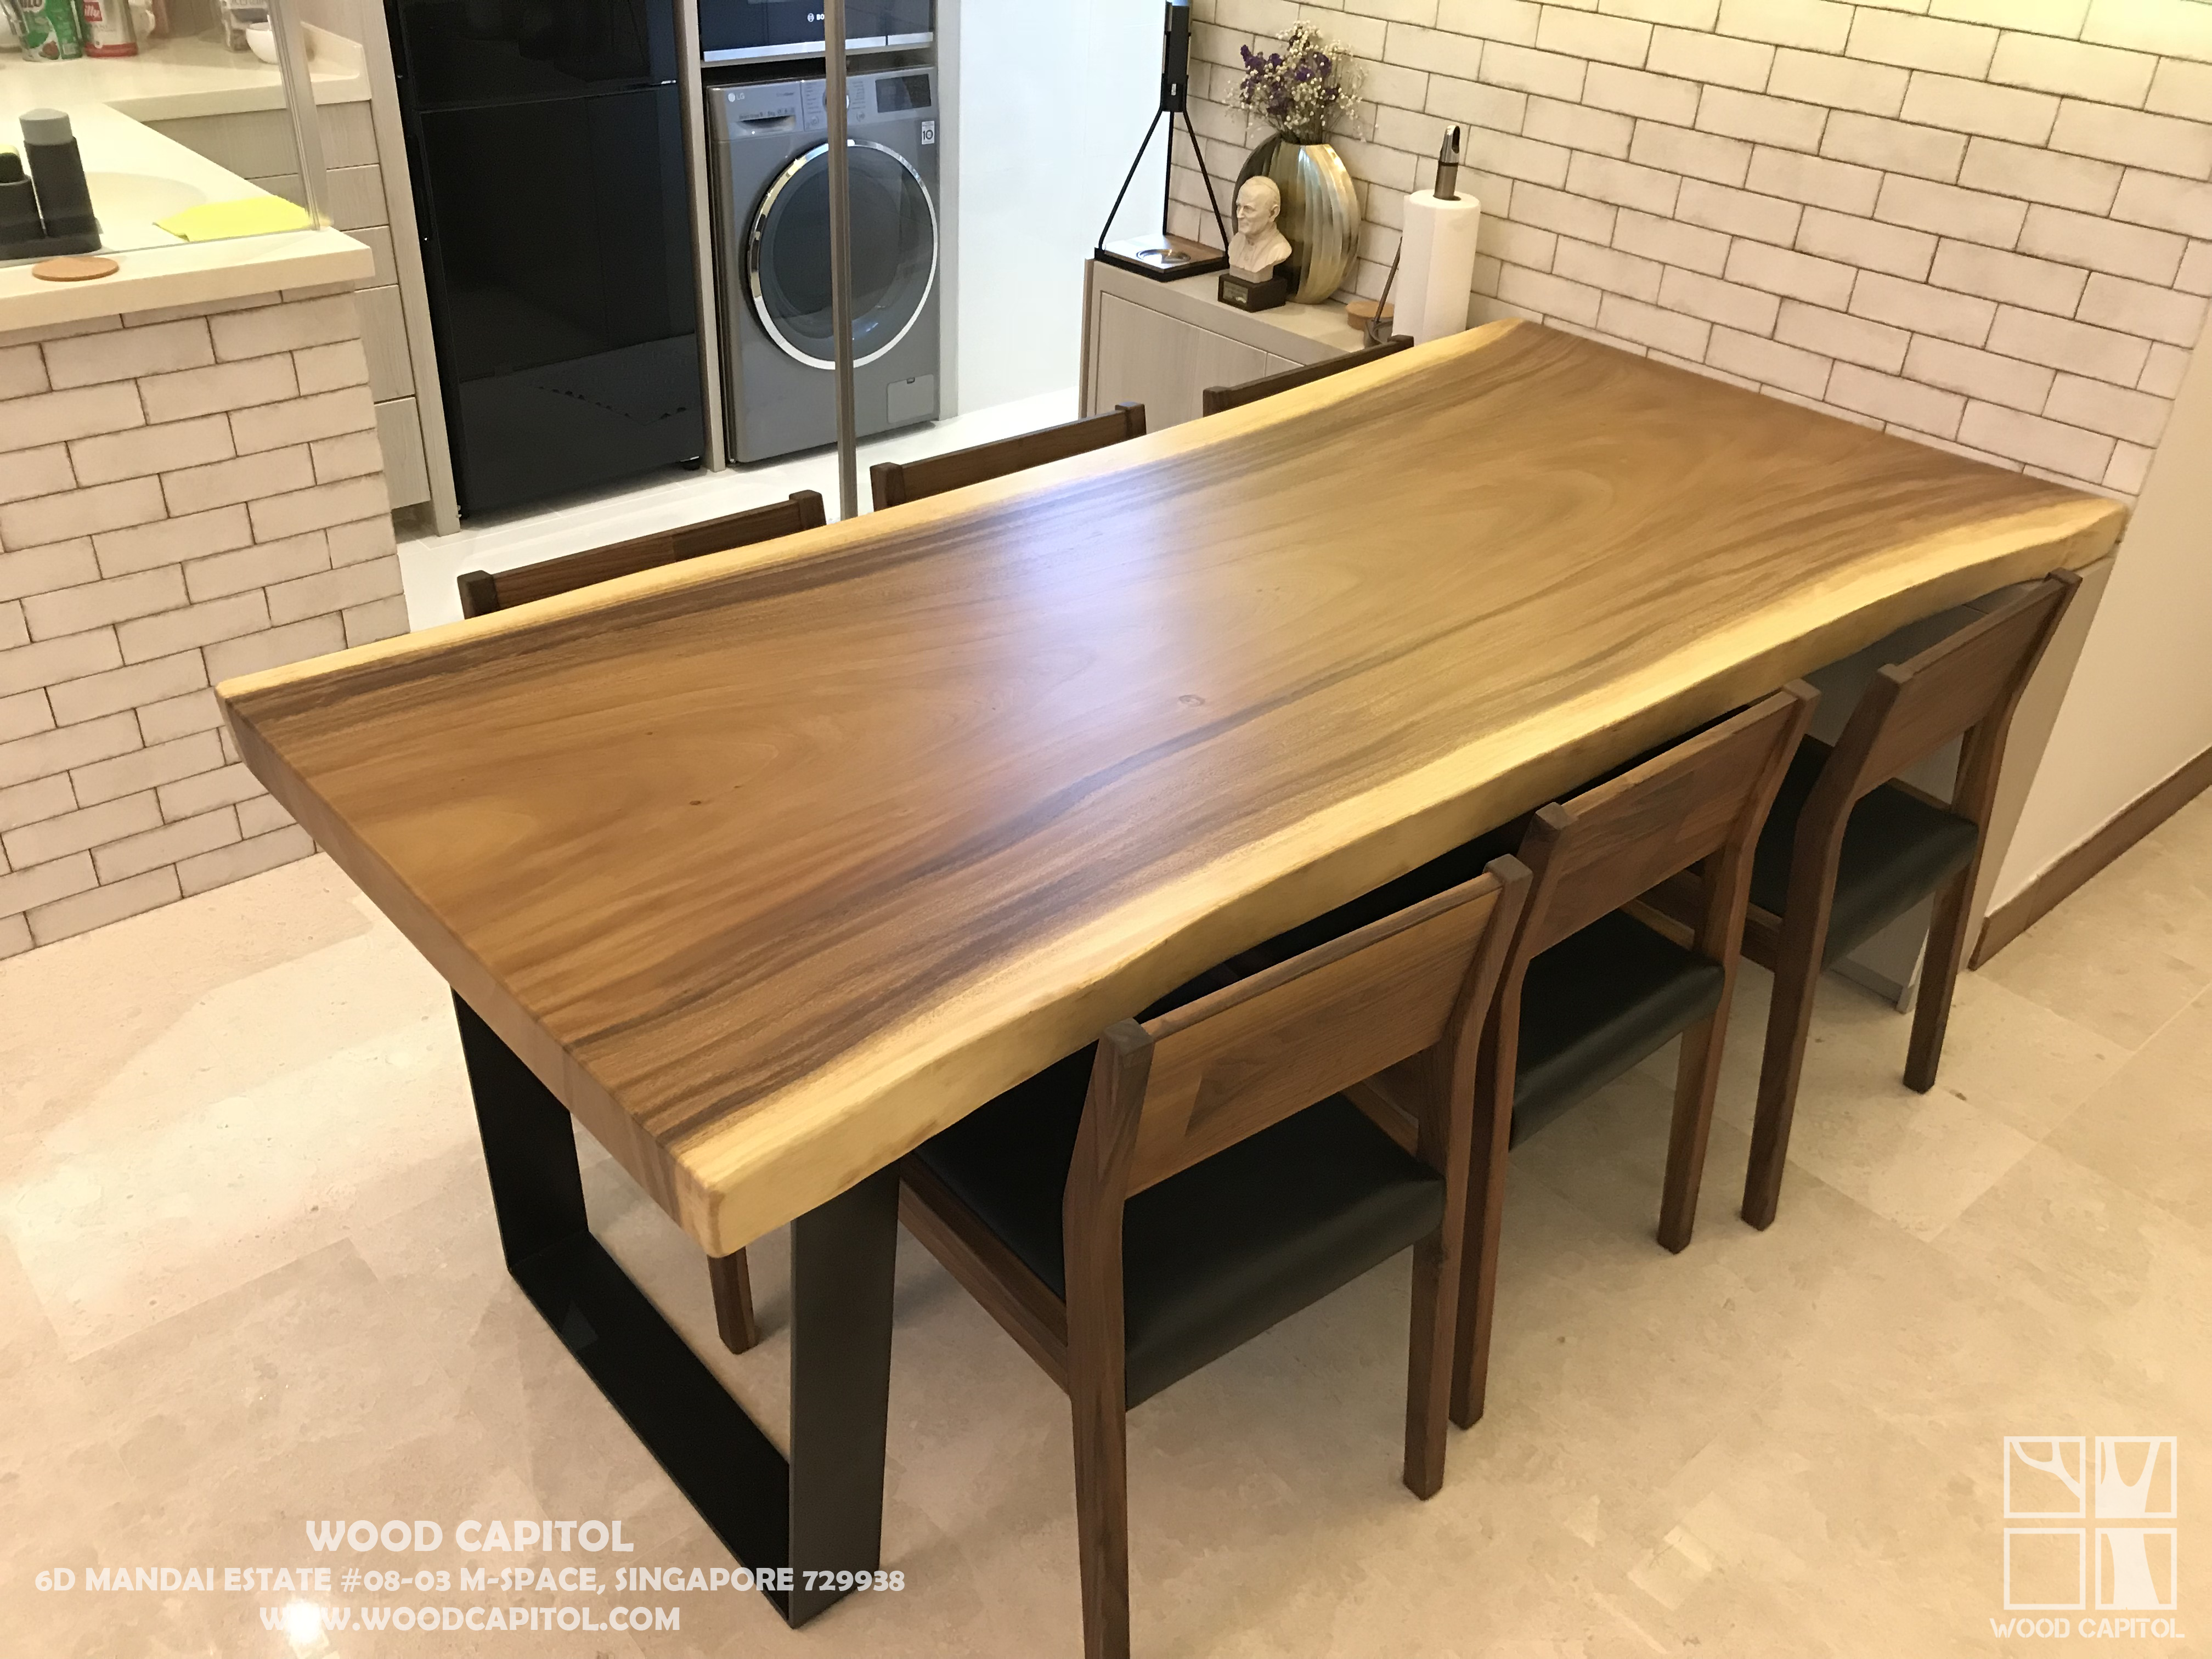 Suar Wood Suar Wood Singapore Suar Wood Table Wooden Table Solid